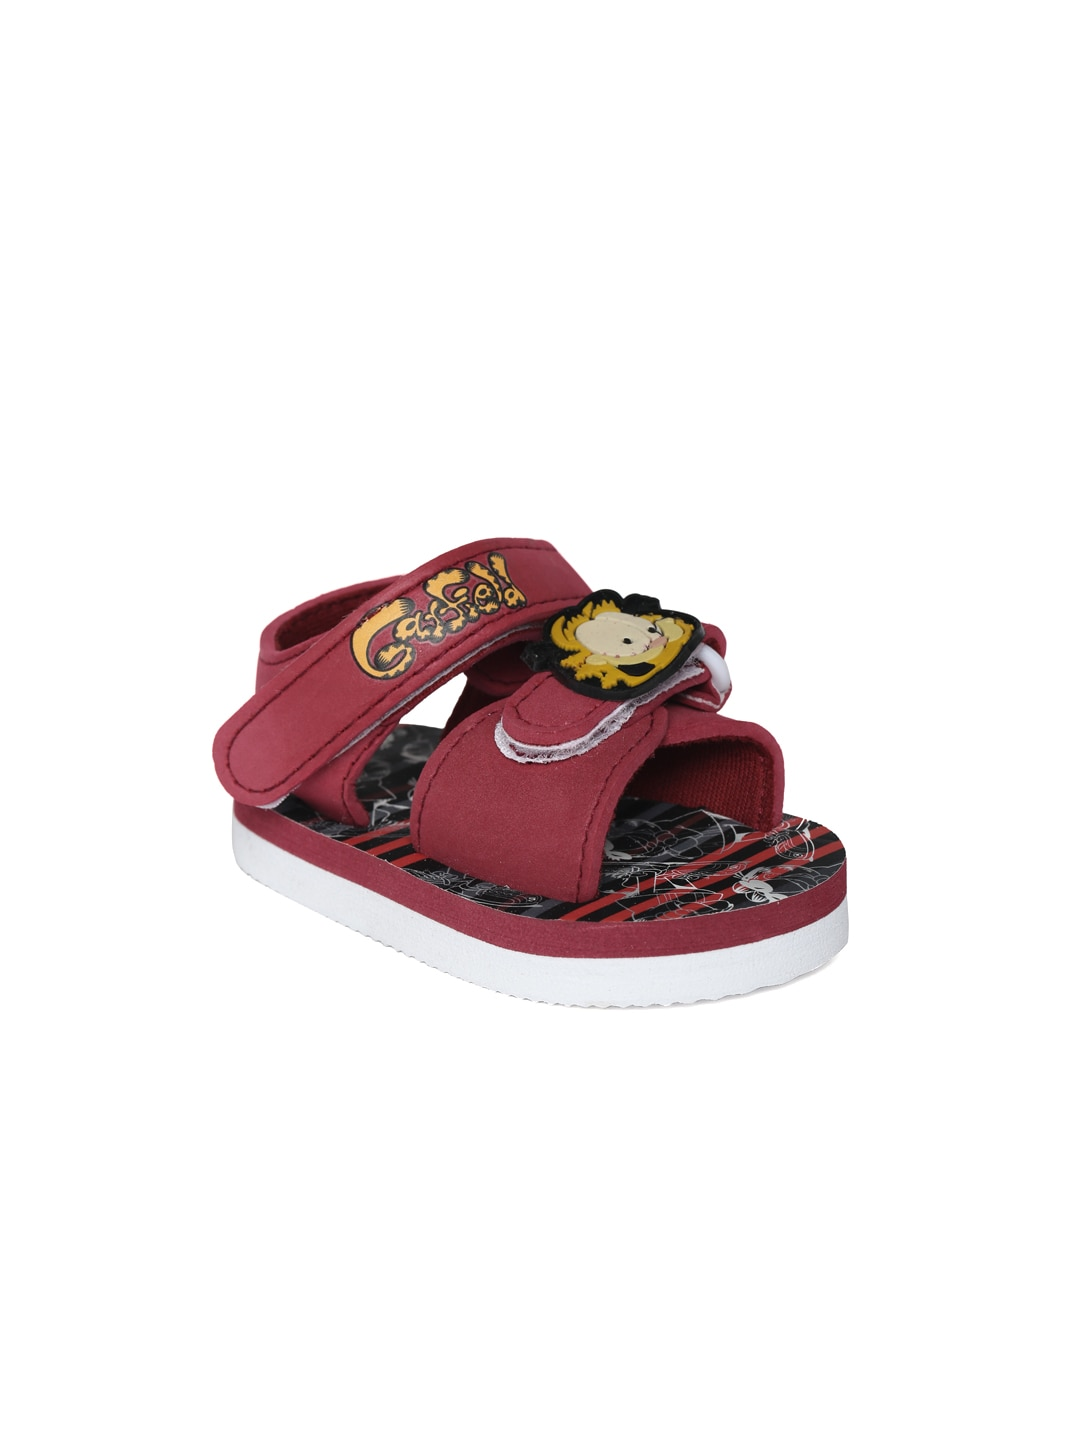 Garfield Garfield Kids Maroon Sandals